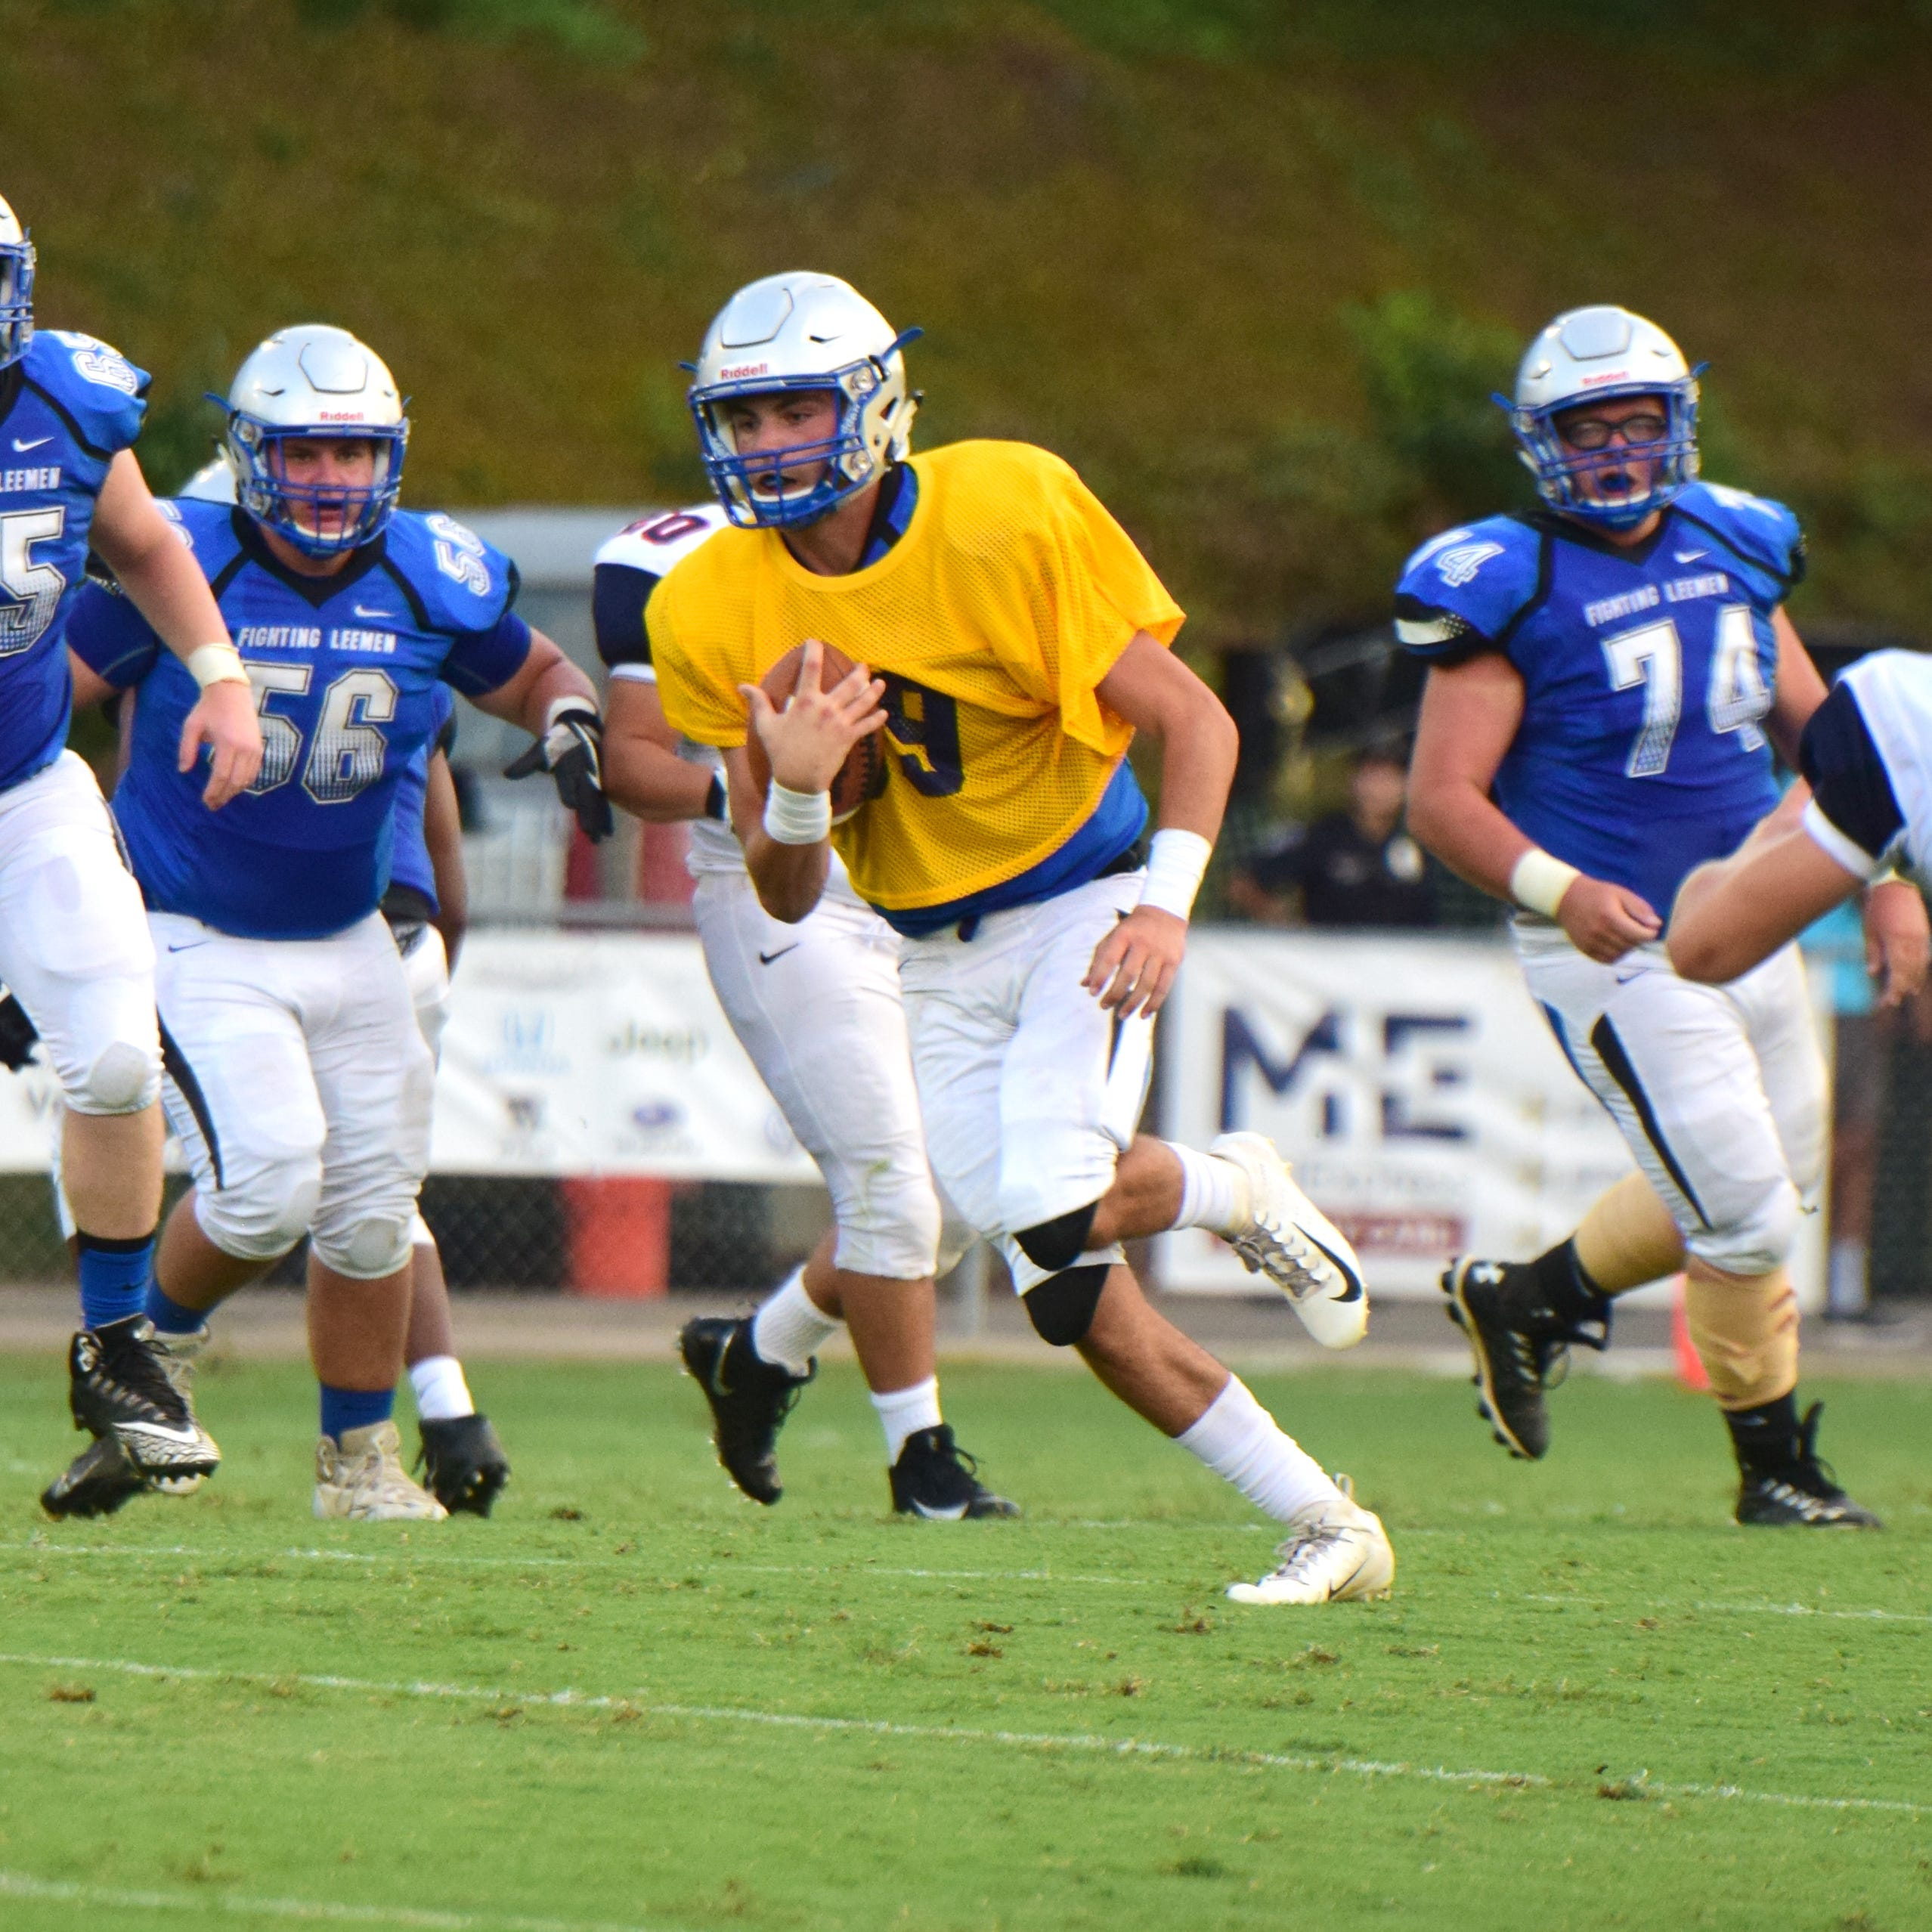 Dod, Leemen show improvement in tough scrimmage with Harrisonburg